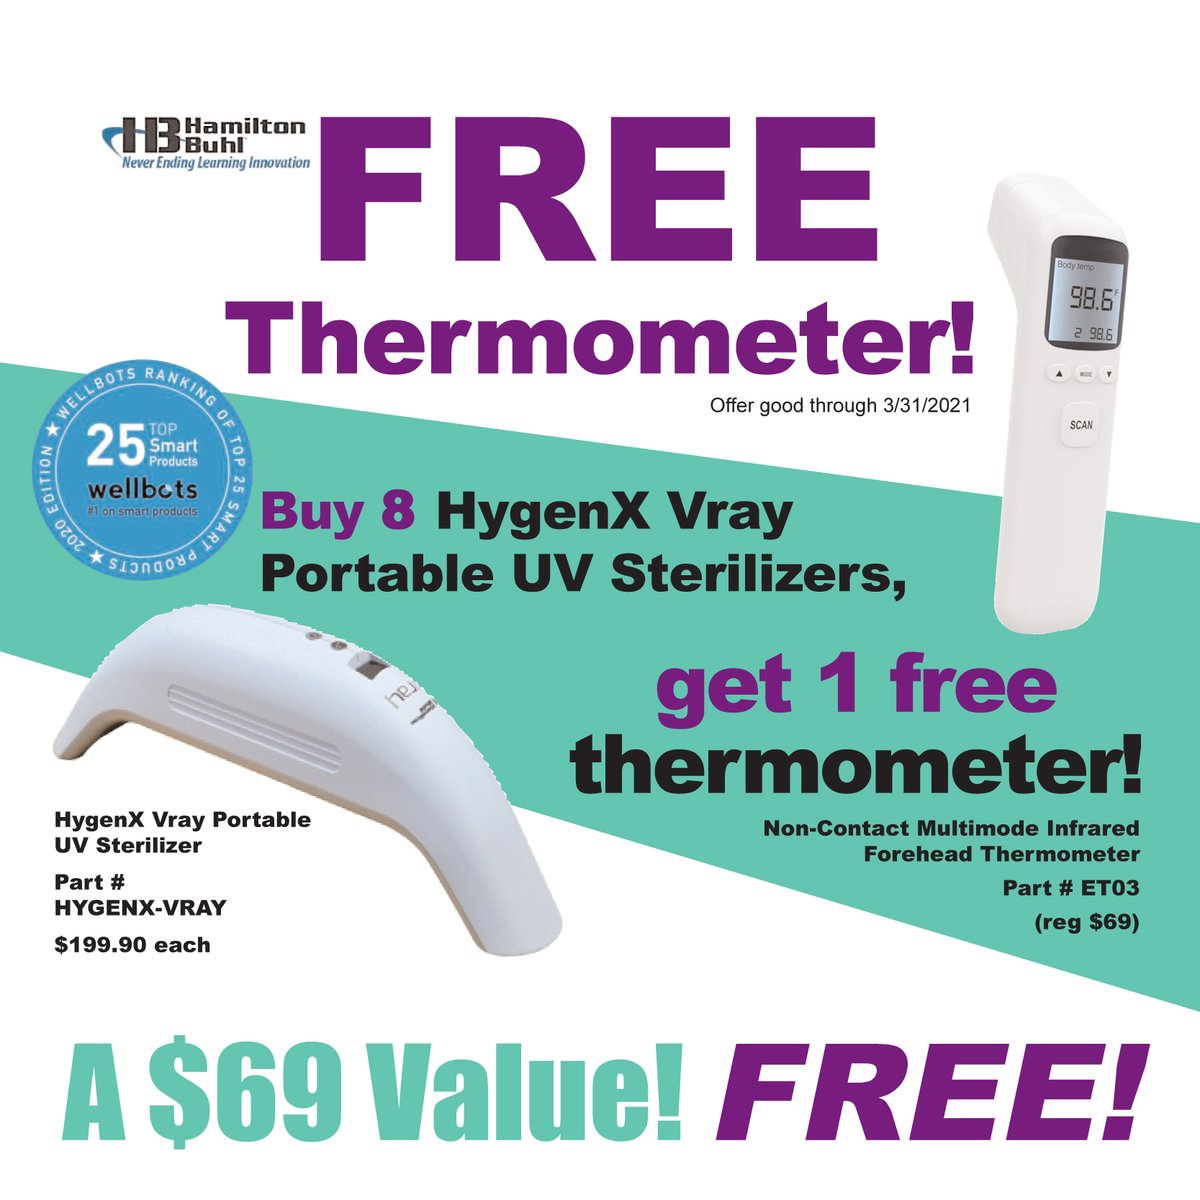 Get a FREE Non-Contact Forehead Thermometer with the purchase of 8 HygenX Vray Portable UV Sterilizers ($69 value). Check out this offer online at https://t.co/MpAaabsm6o https://t.co/qN0tDxcfnm